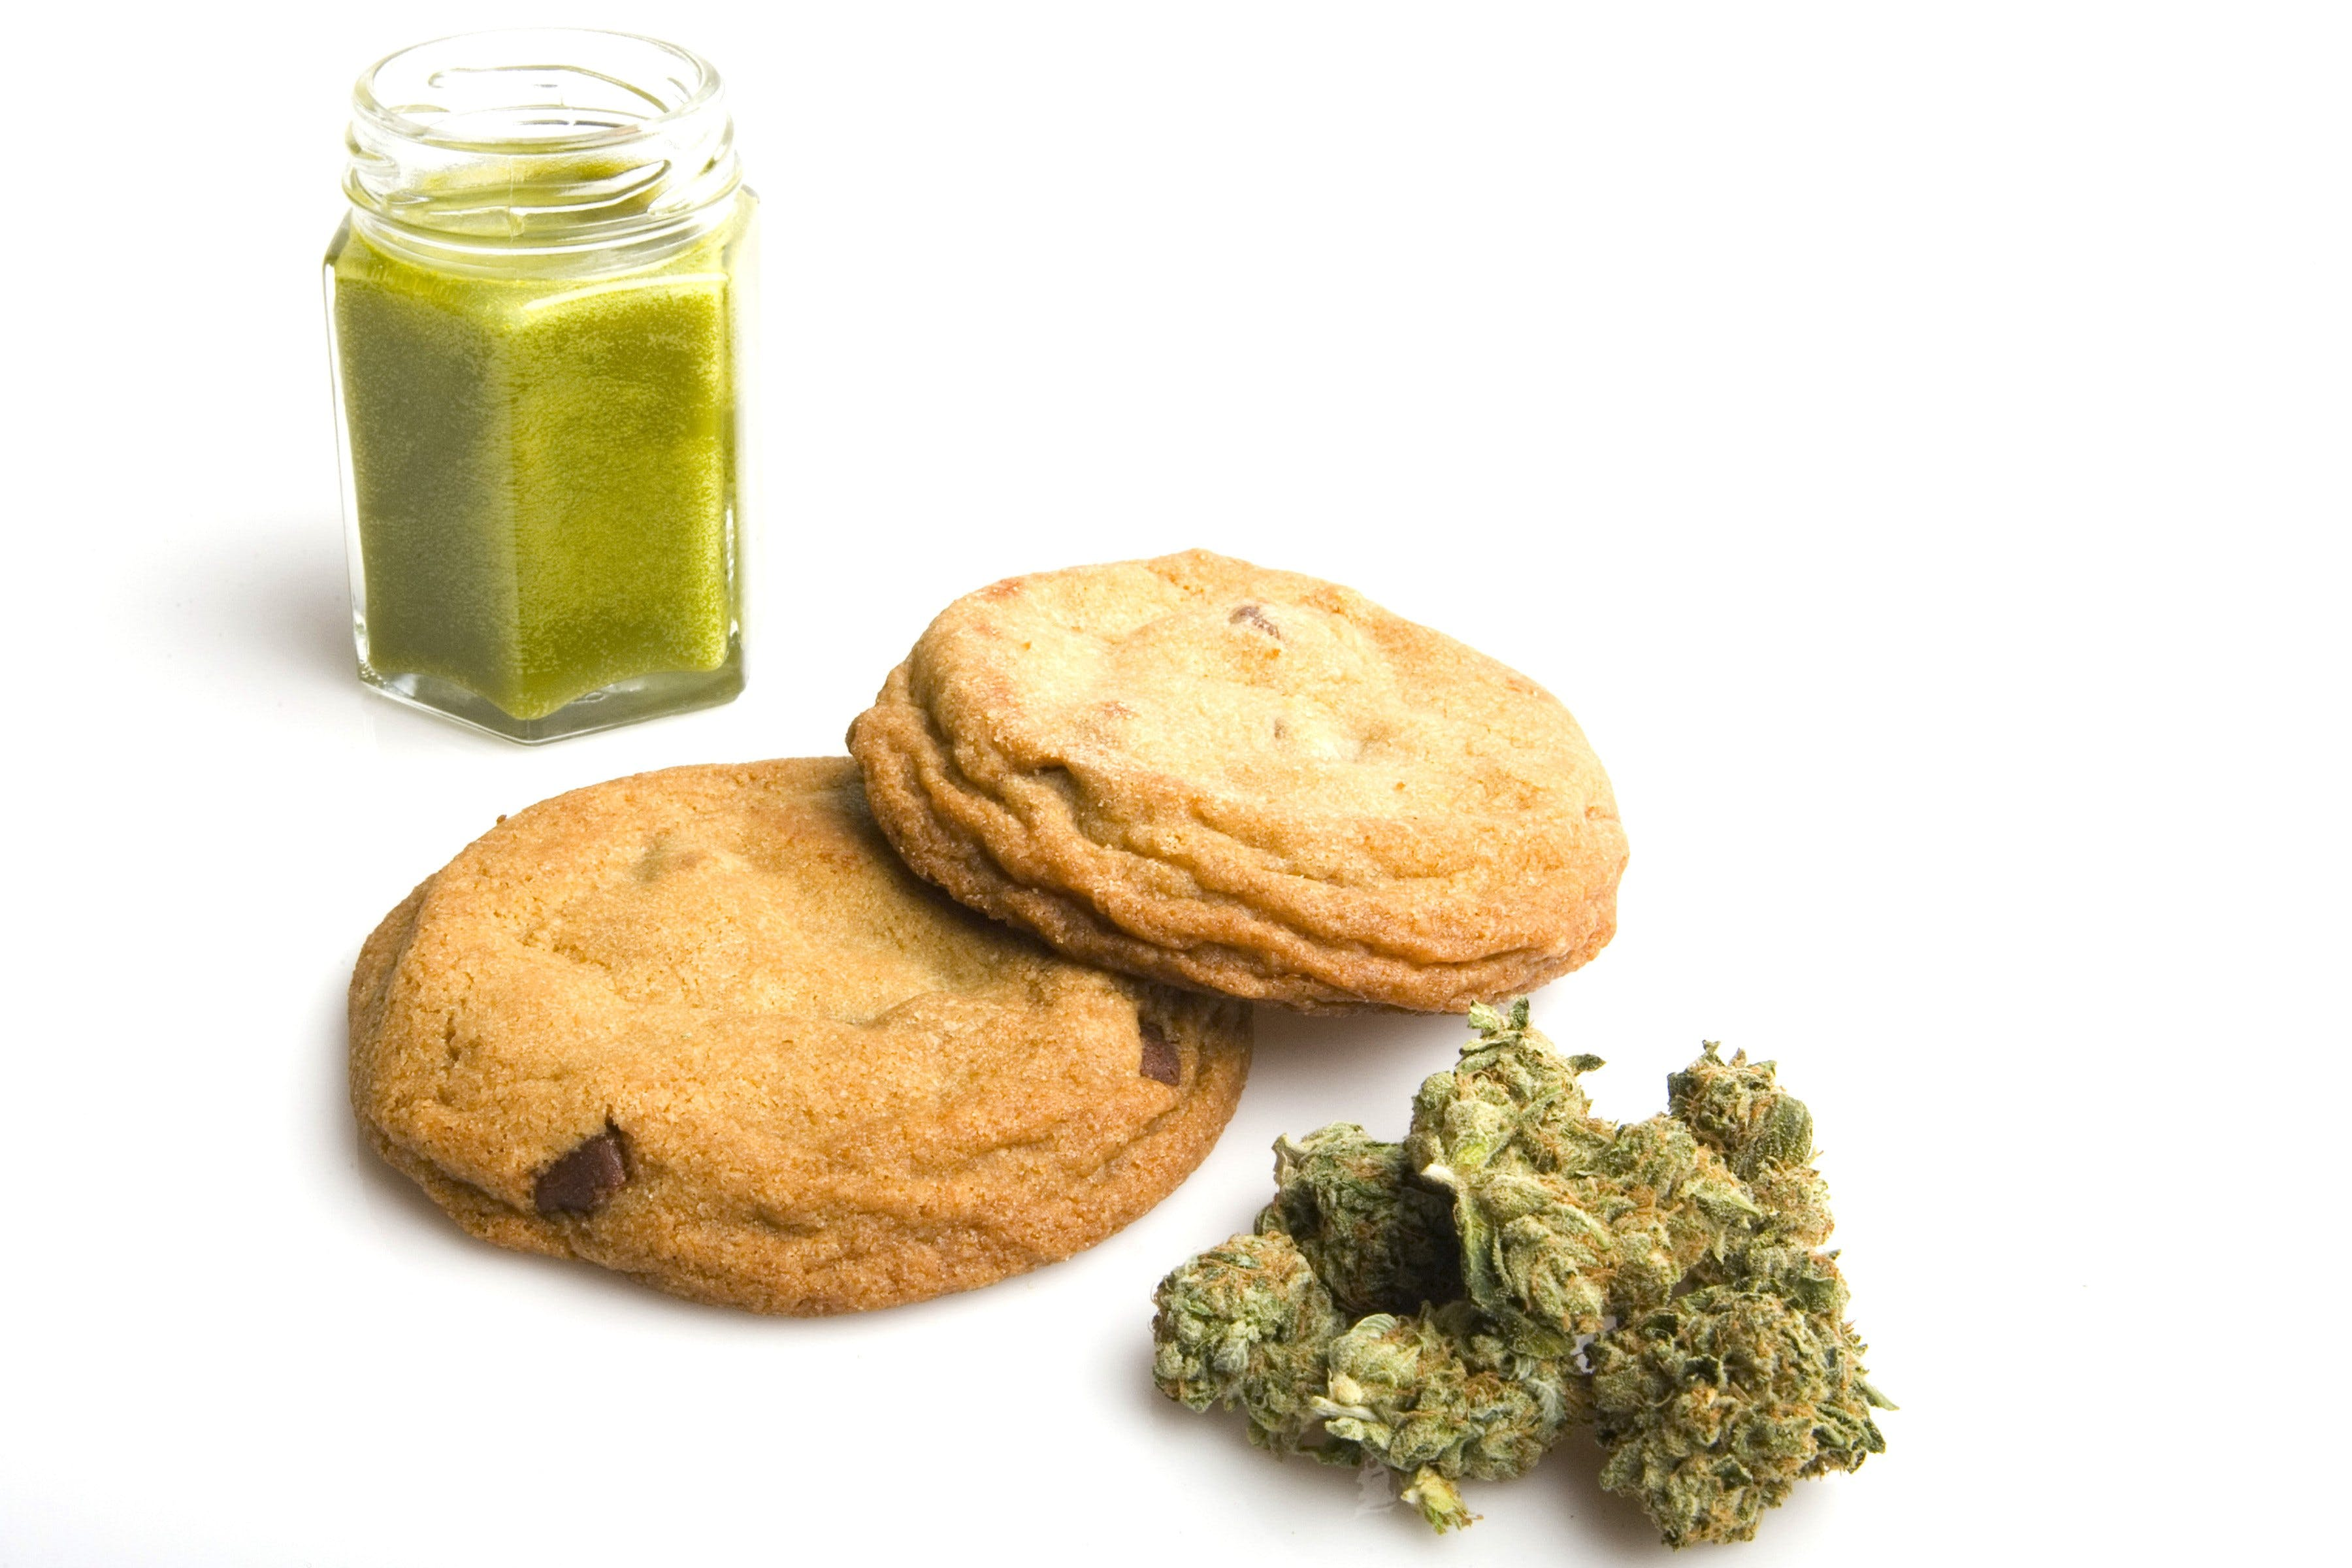 Edibles 1 Babies Need Cannabinoids To Grow Into Productive Citizens